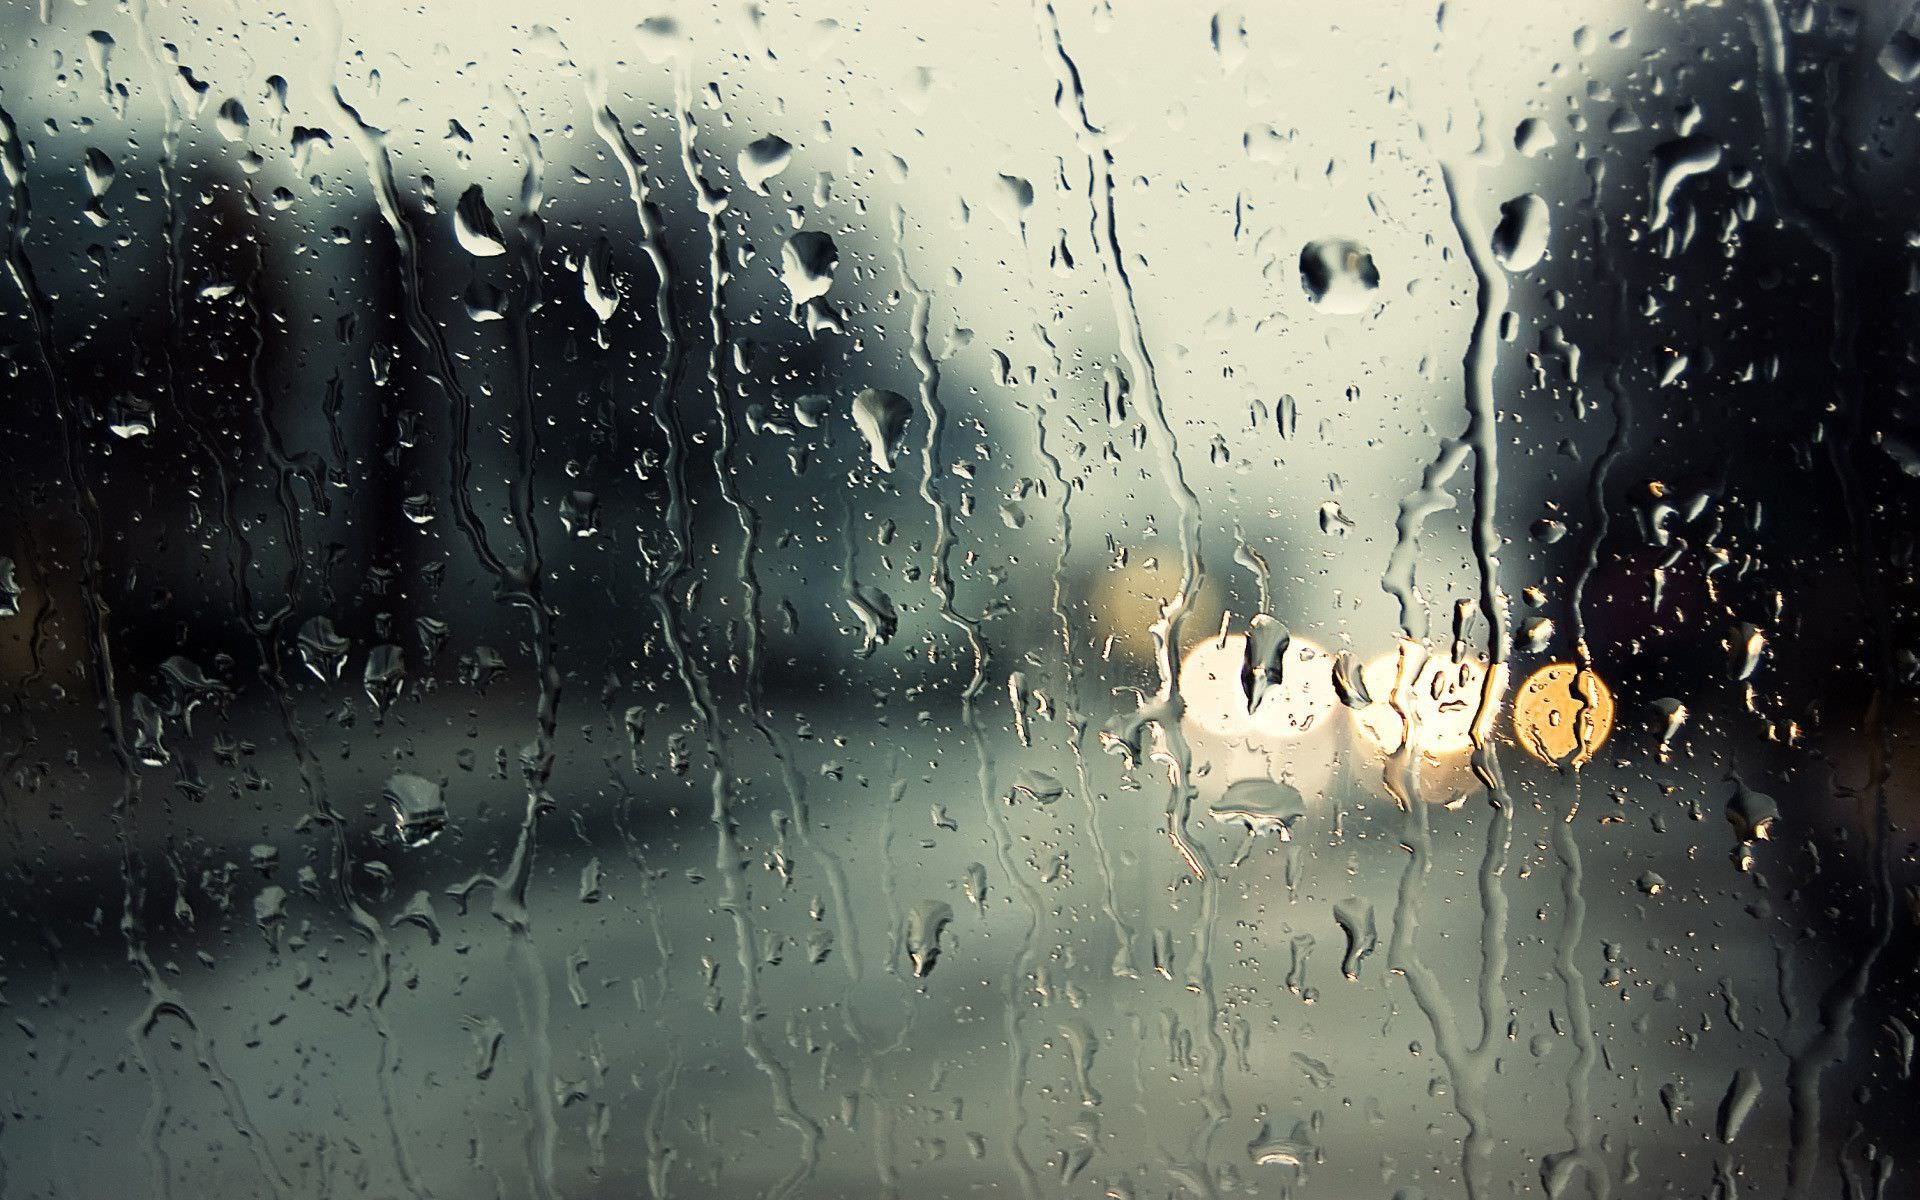 raining hd wallpapers 72 images